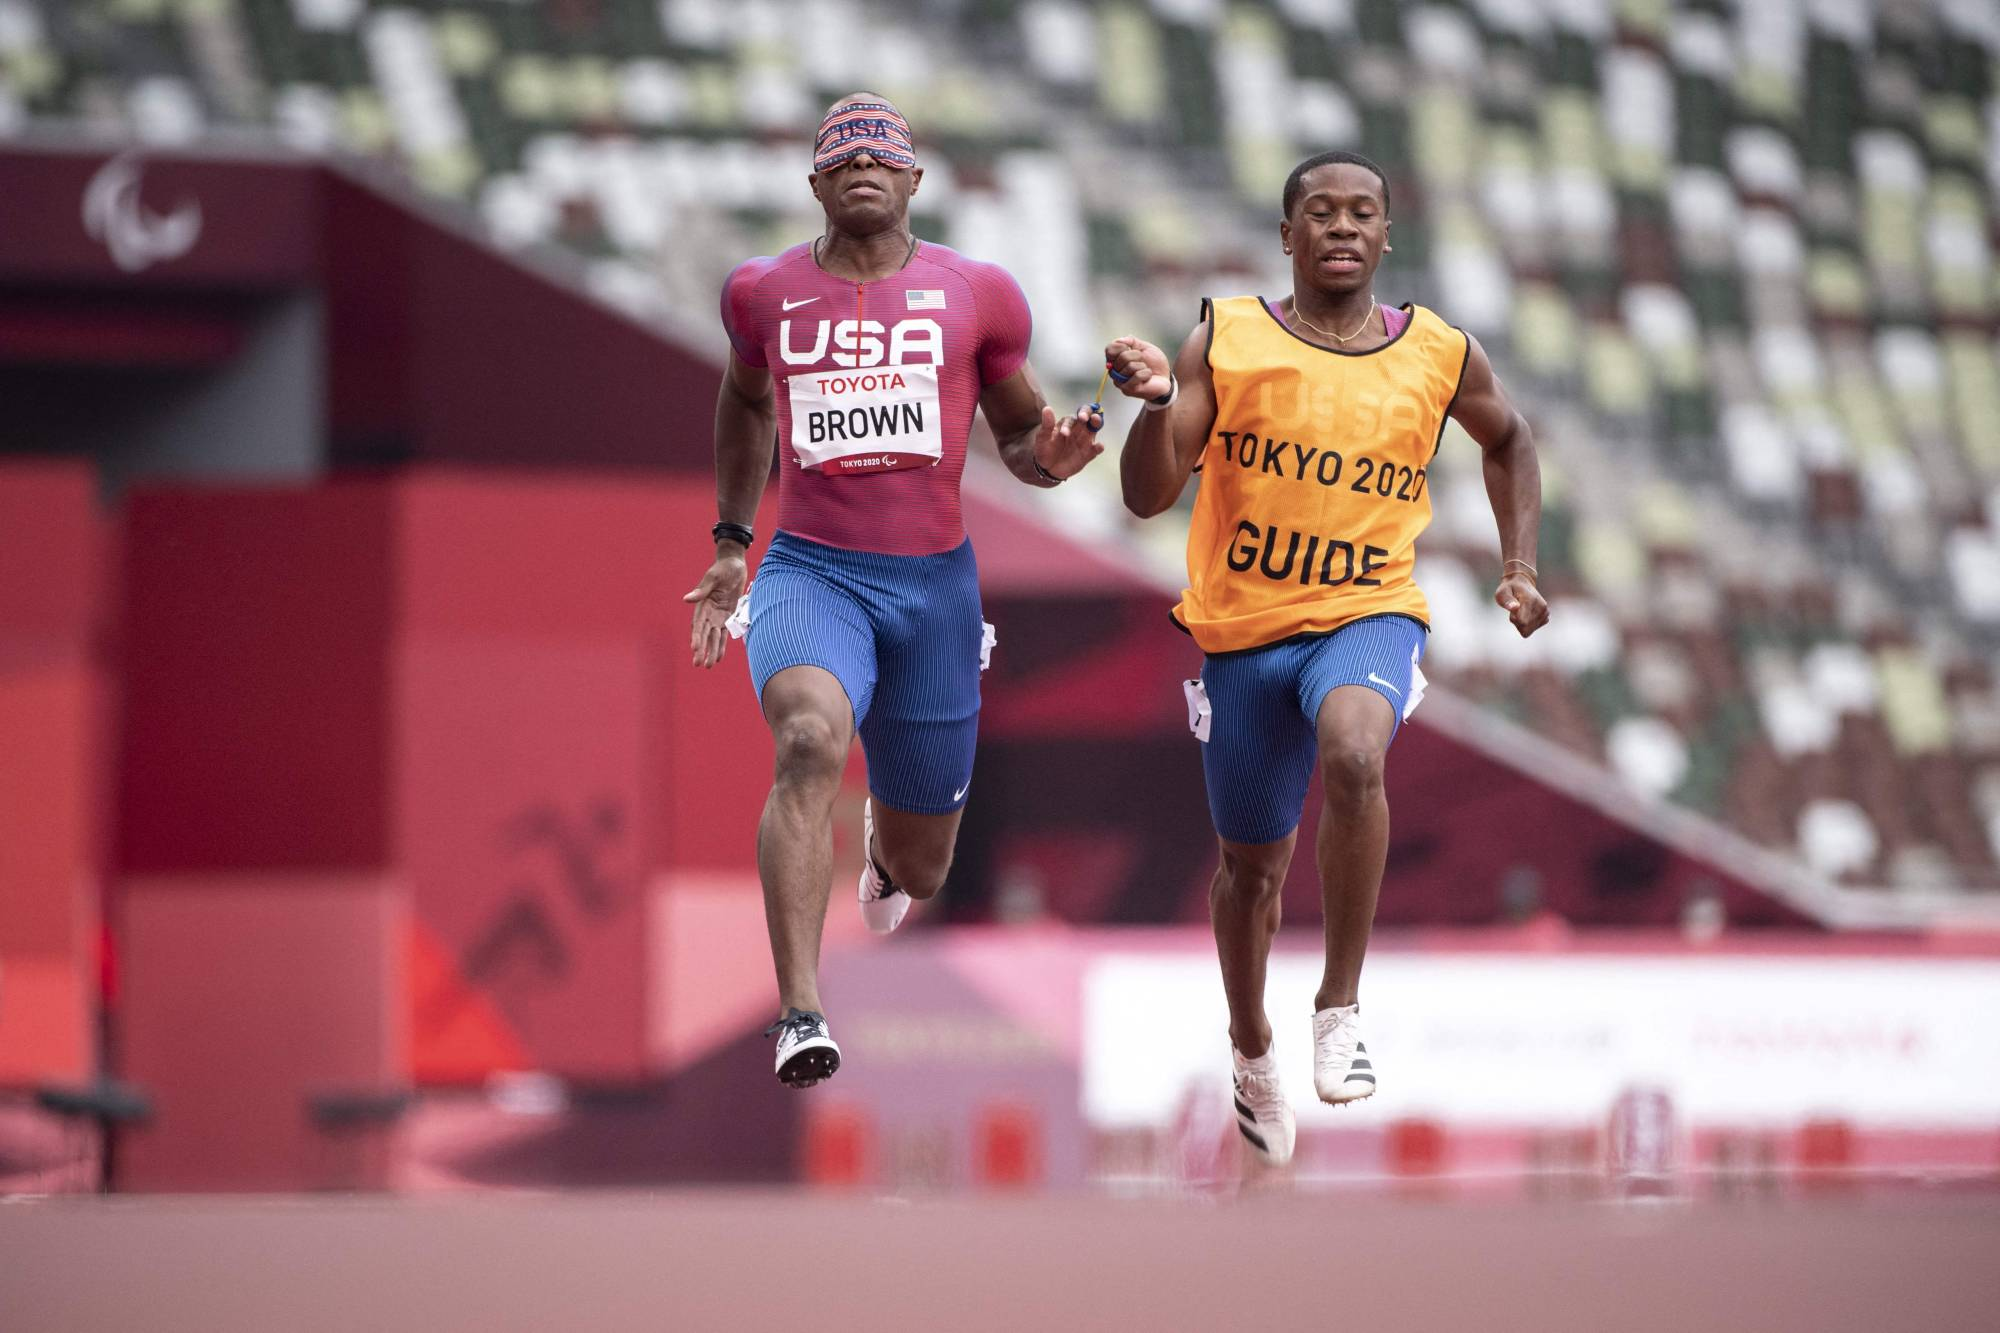 David Brown, with his guide Moray Steward, compete in the men's T11 100-meter heats on Wednesday at National Stadium.    AFP-JIJI